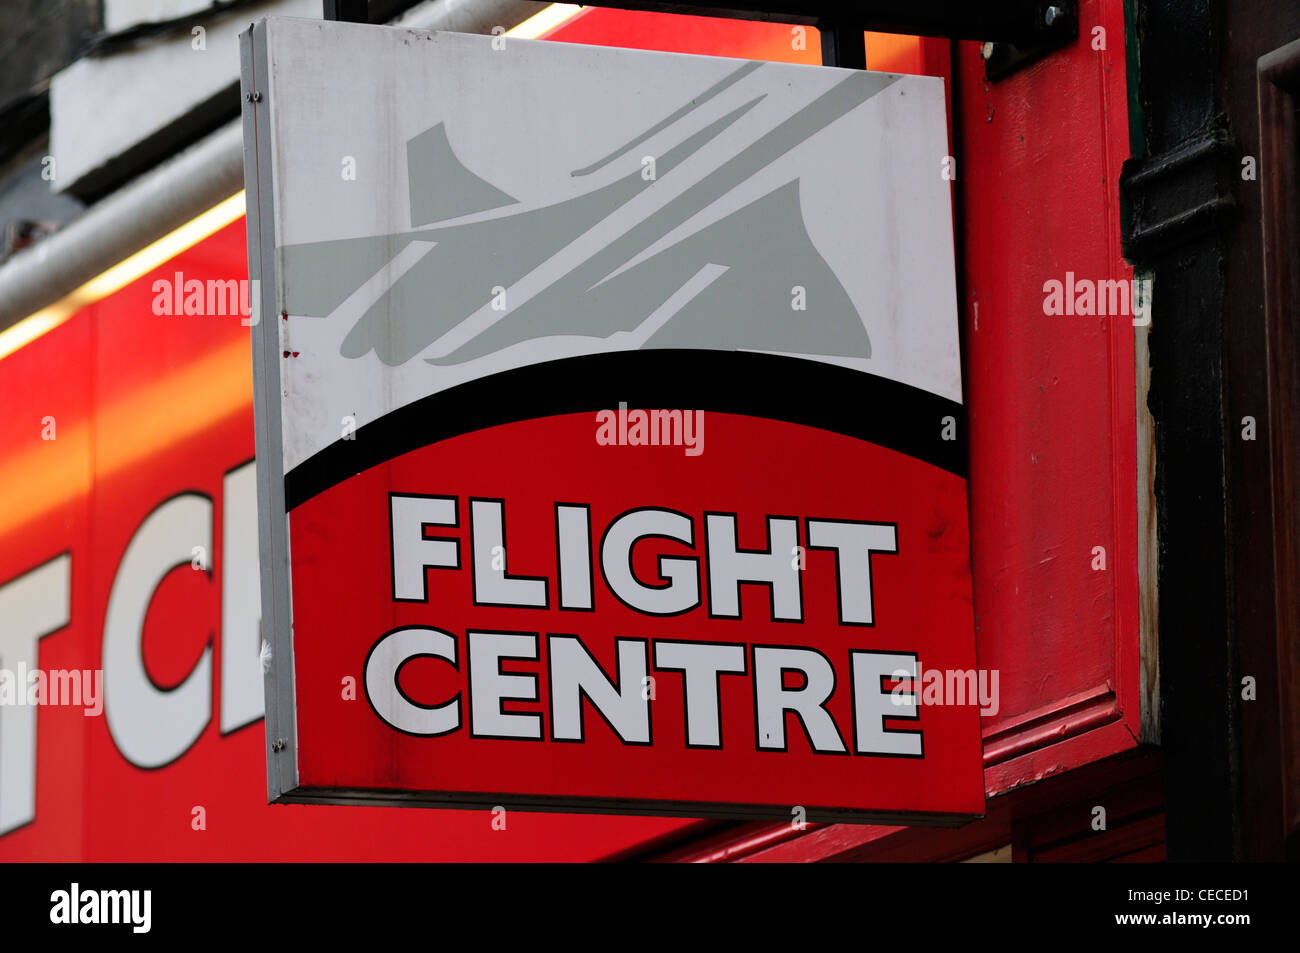 Flight Centre Travel Agent's Sign, Cambridge, England, UK Photo Stock